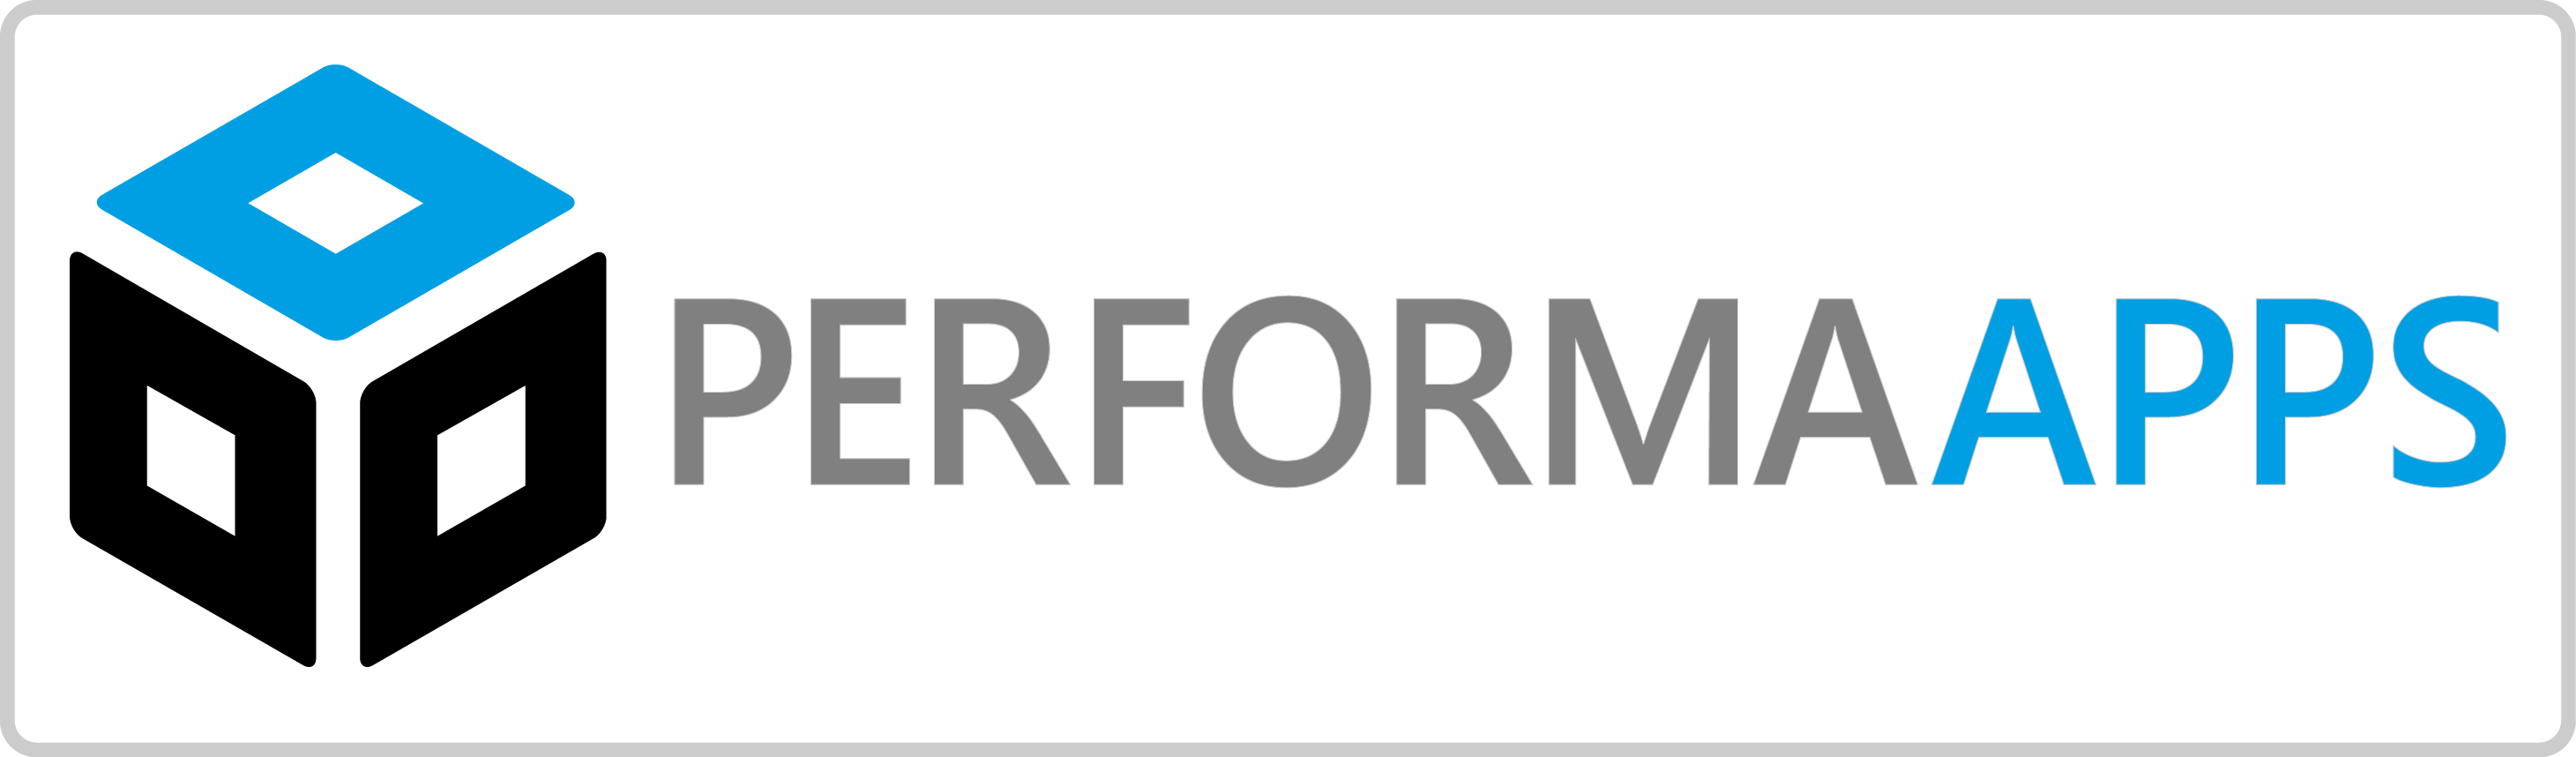 Performa Apps